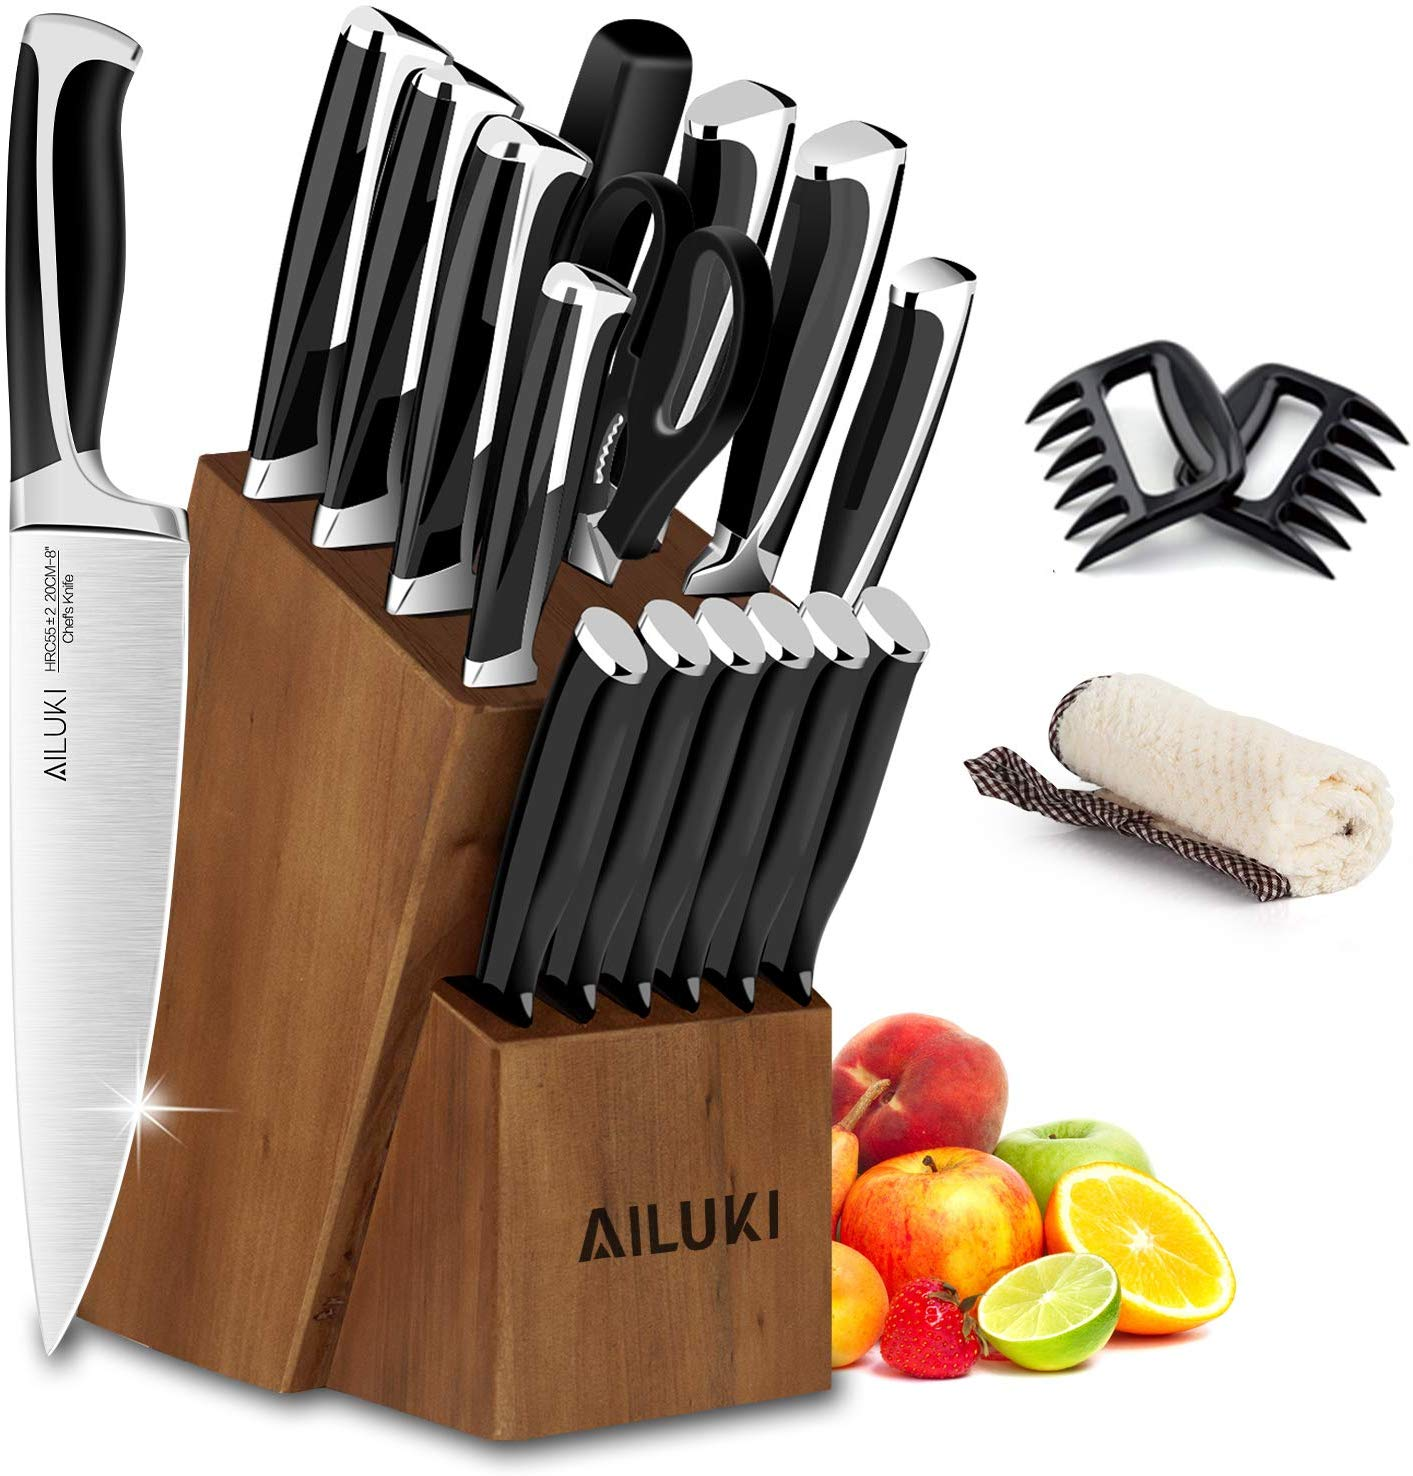 Knife Set, Kitchen Knife Set with Block, AILUKI 19 Pieces Stainless Steel Knife Set